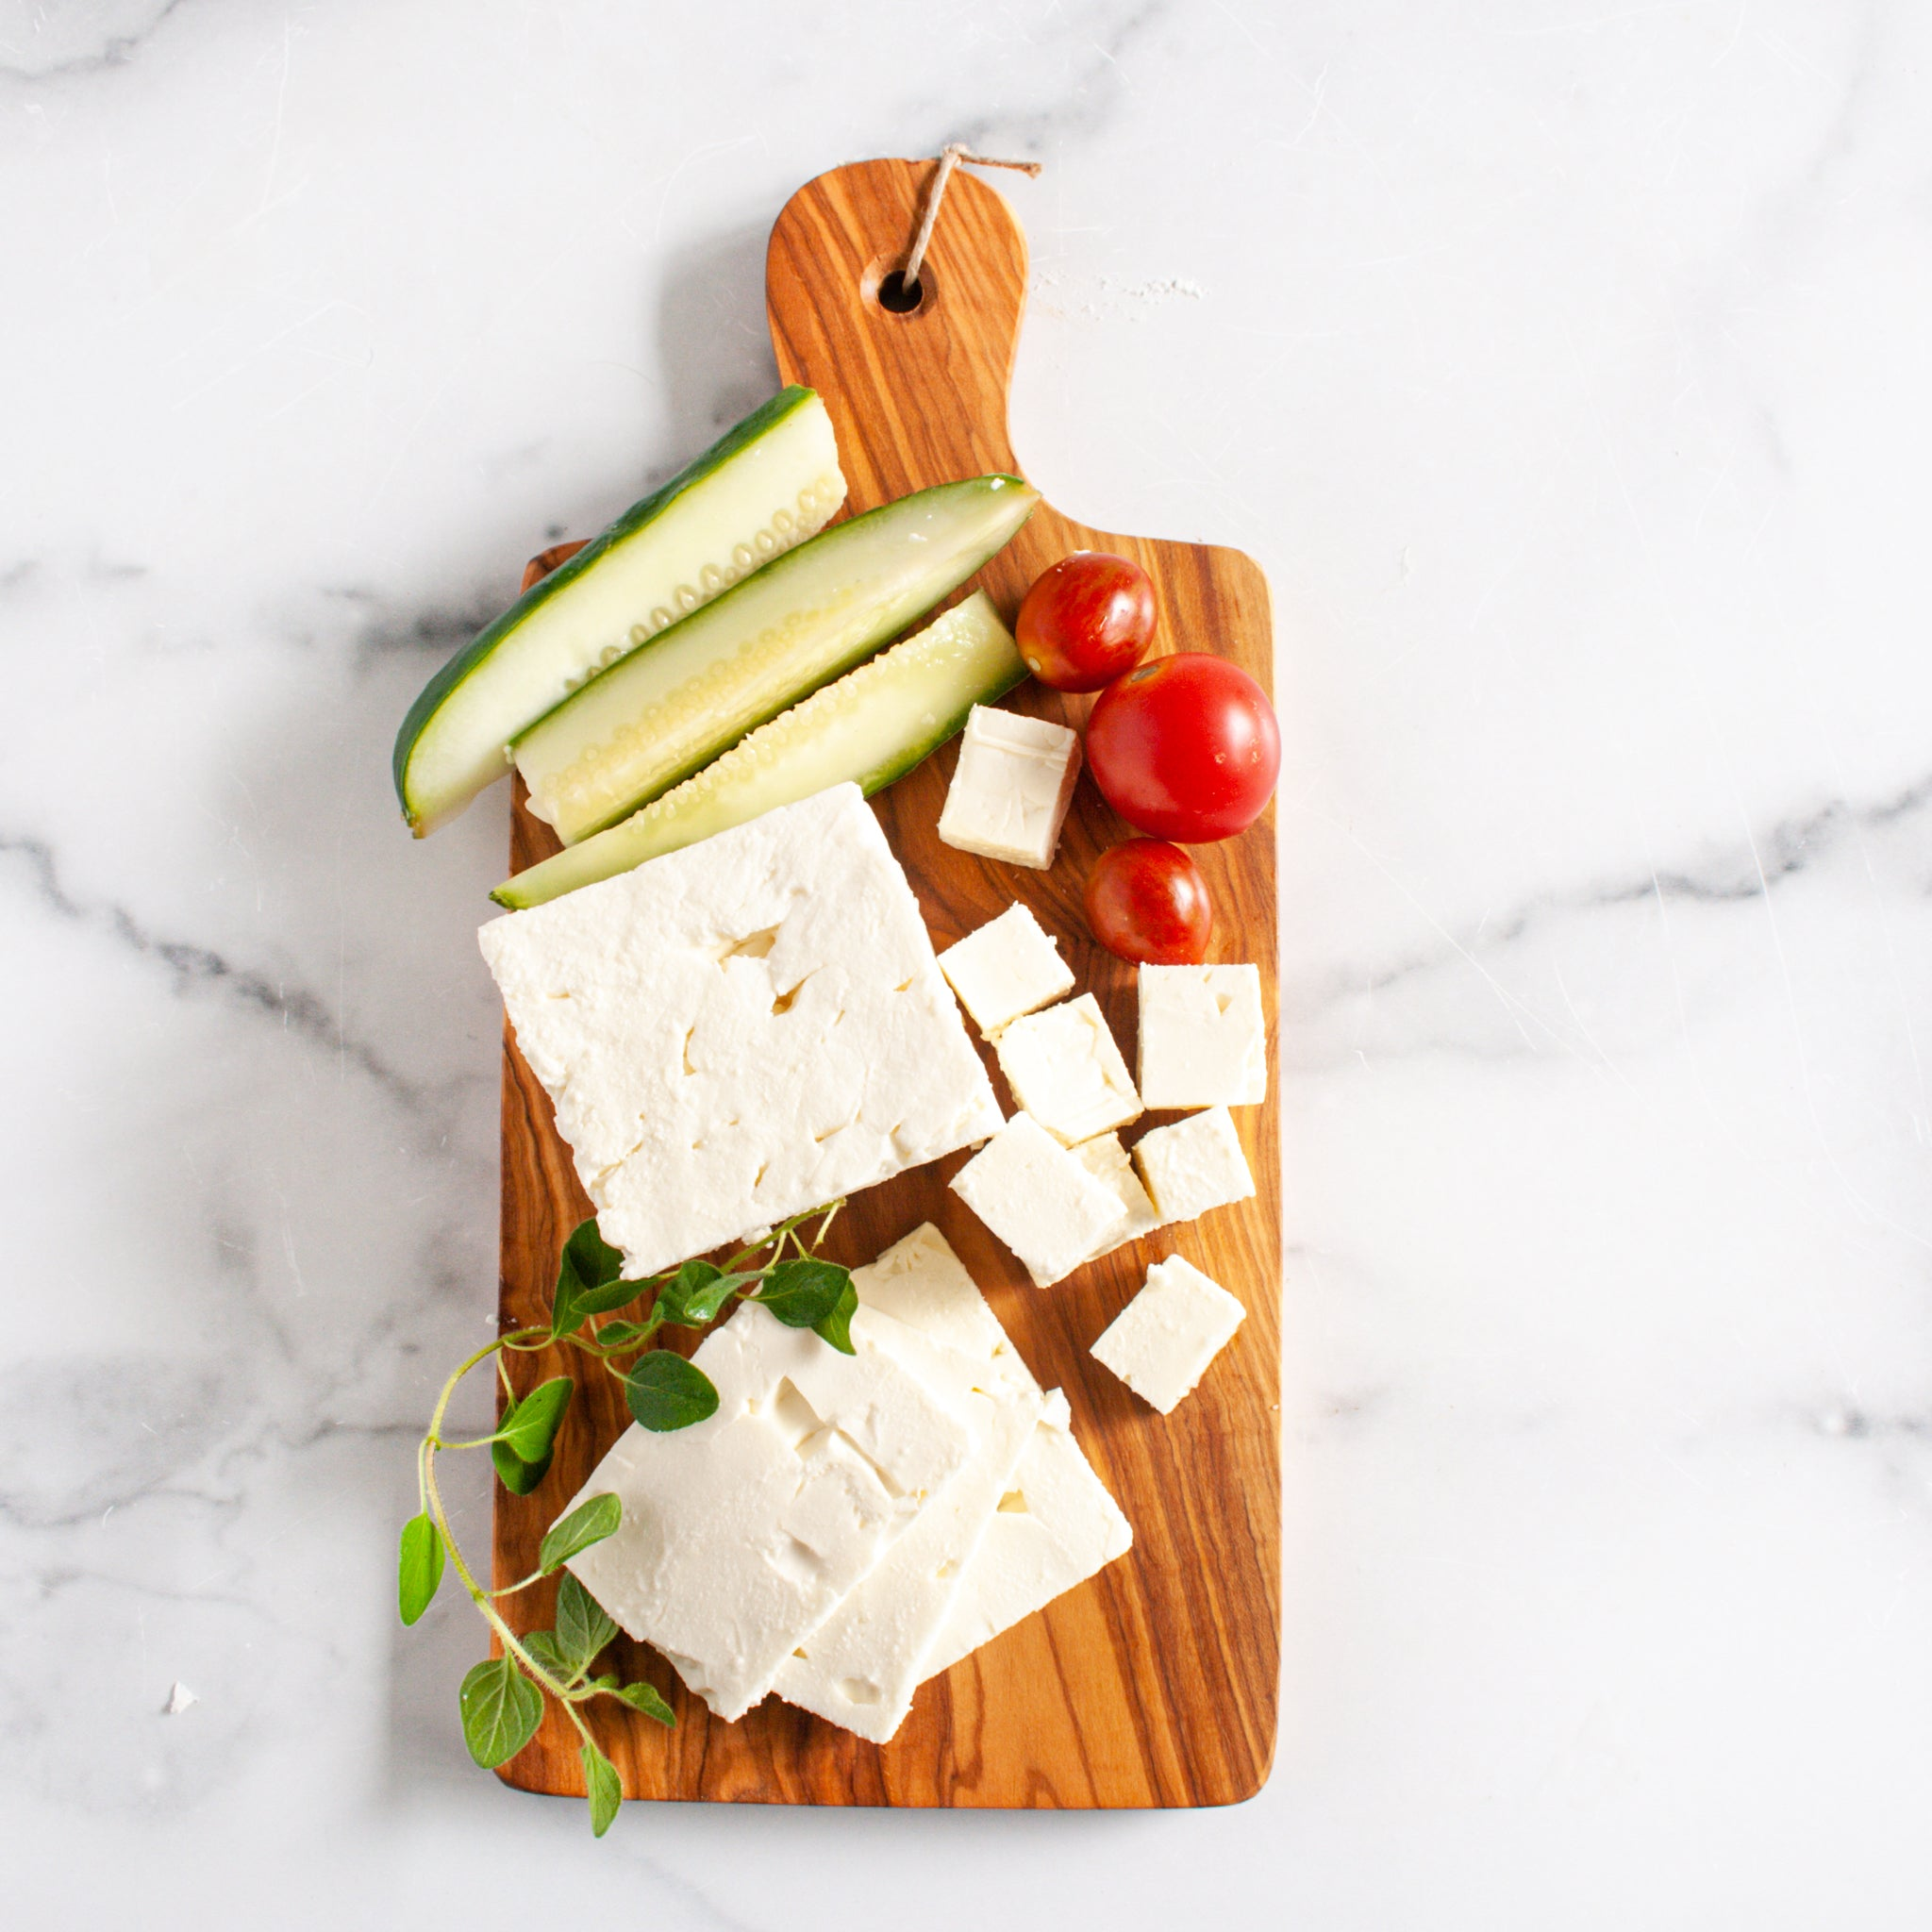 Authentic Barrel-Aged Feta DOP Cheese